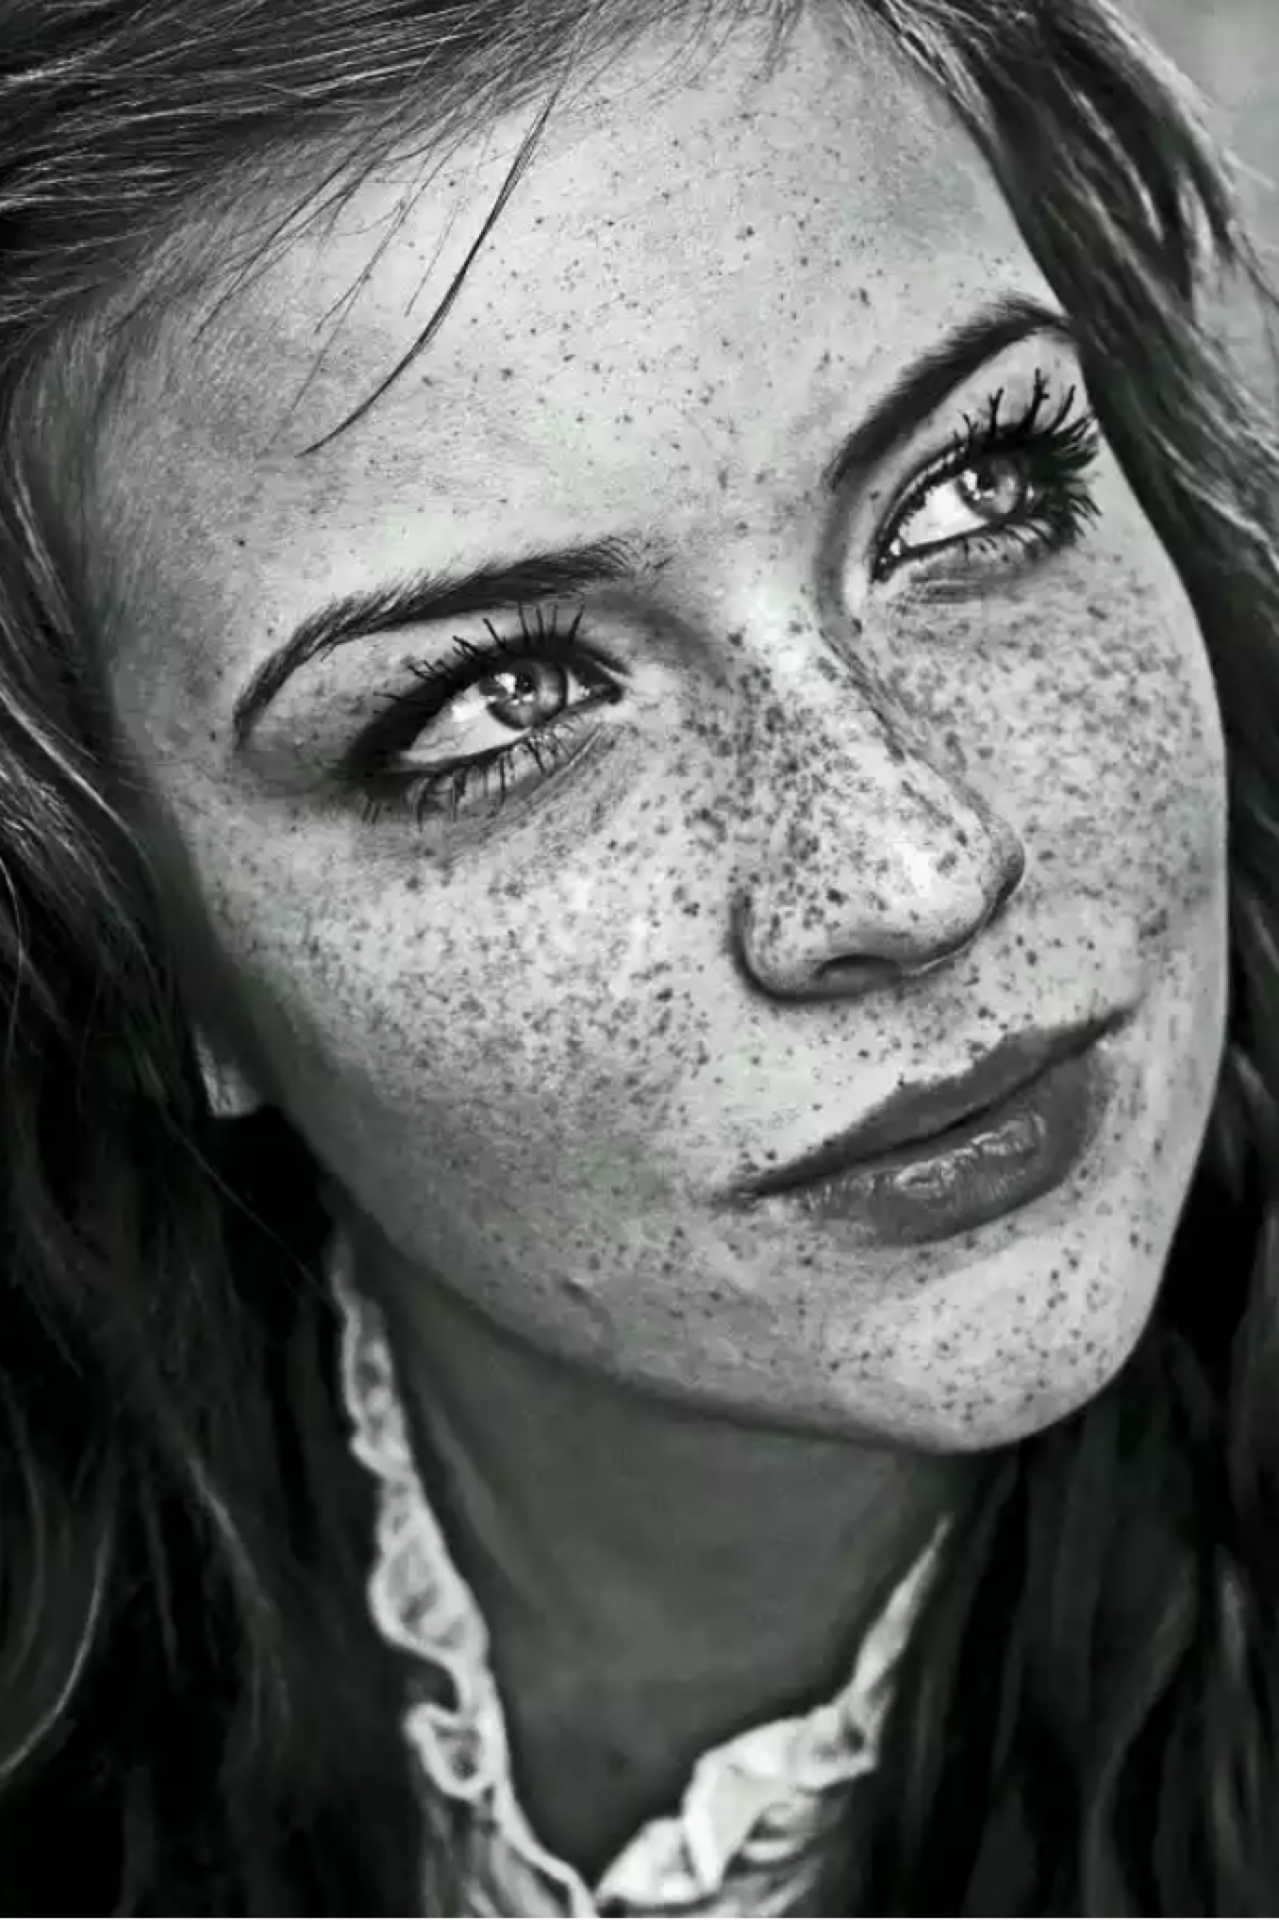 Girl with freckles face pencil drawing realistic face drawing amazing pencil drawings art